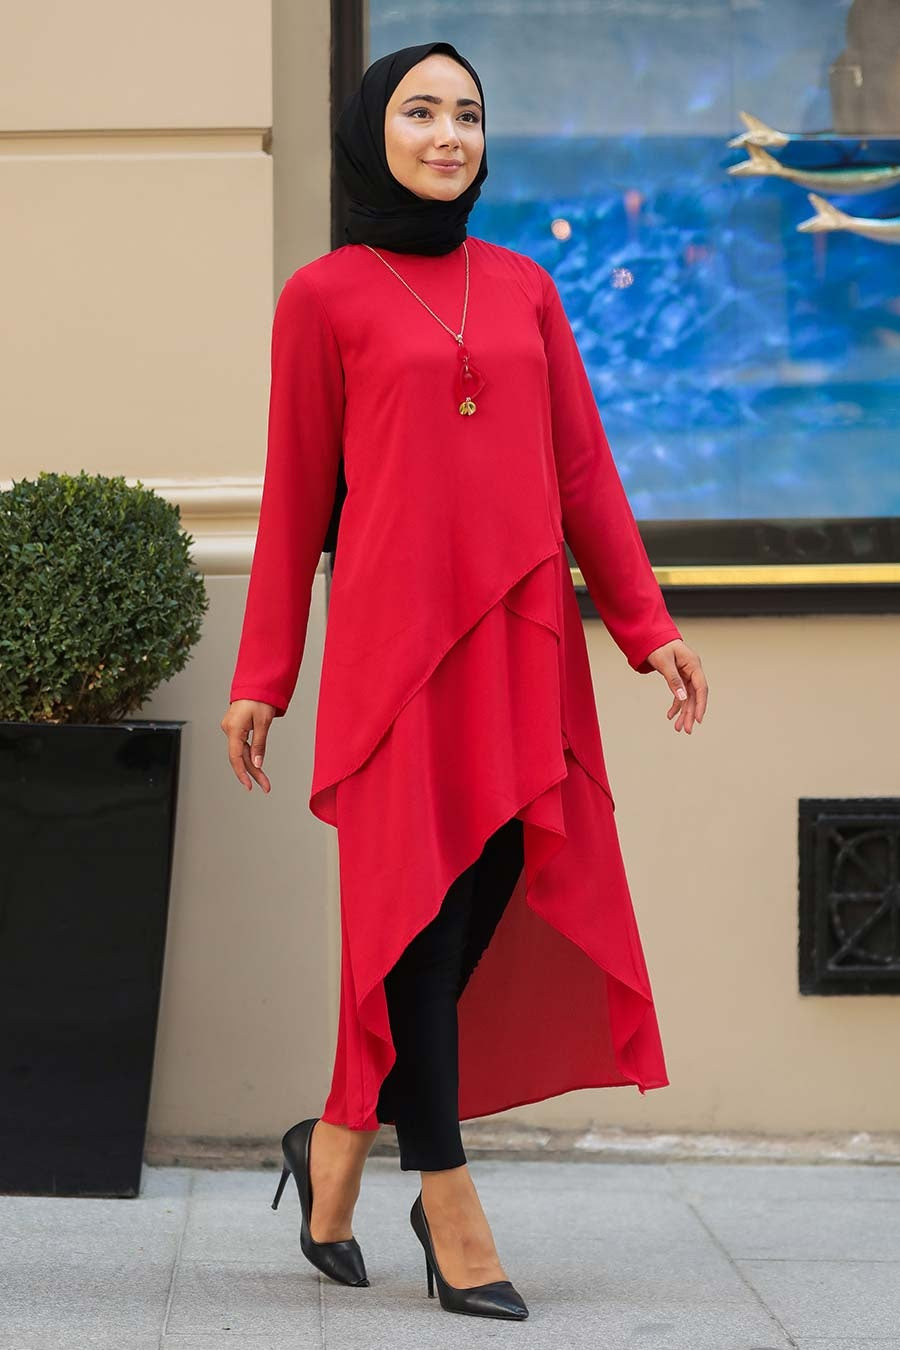 Women's Necklace Accessory Red Modest Tunic